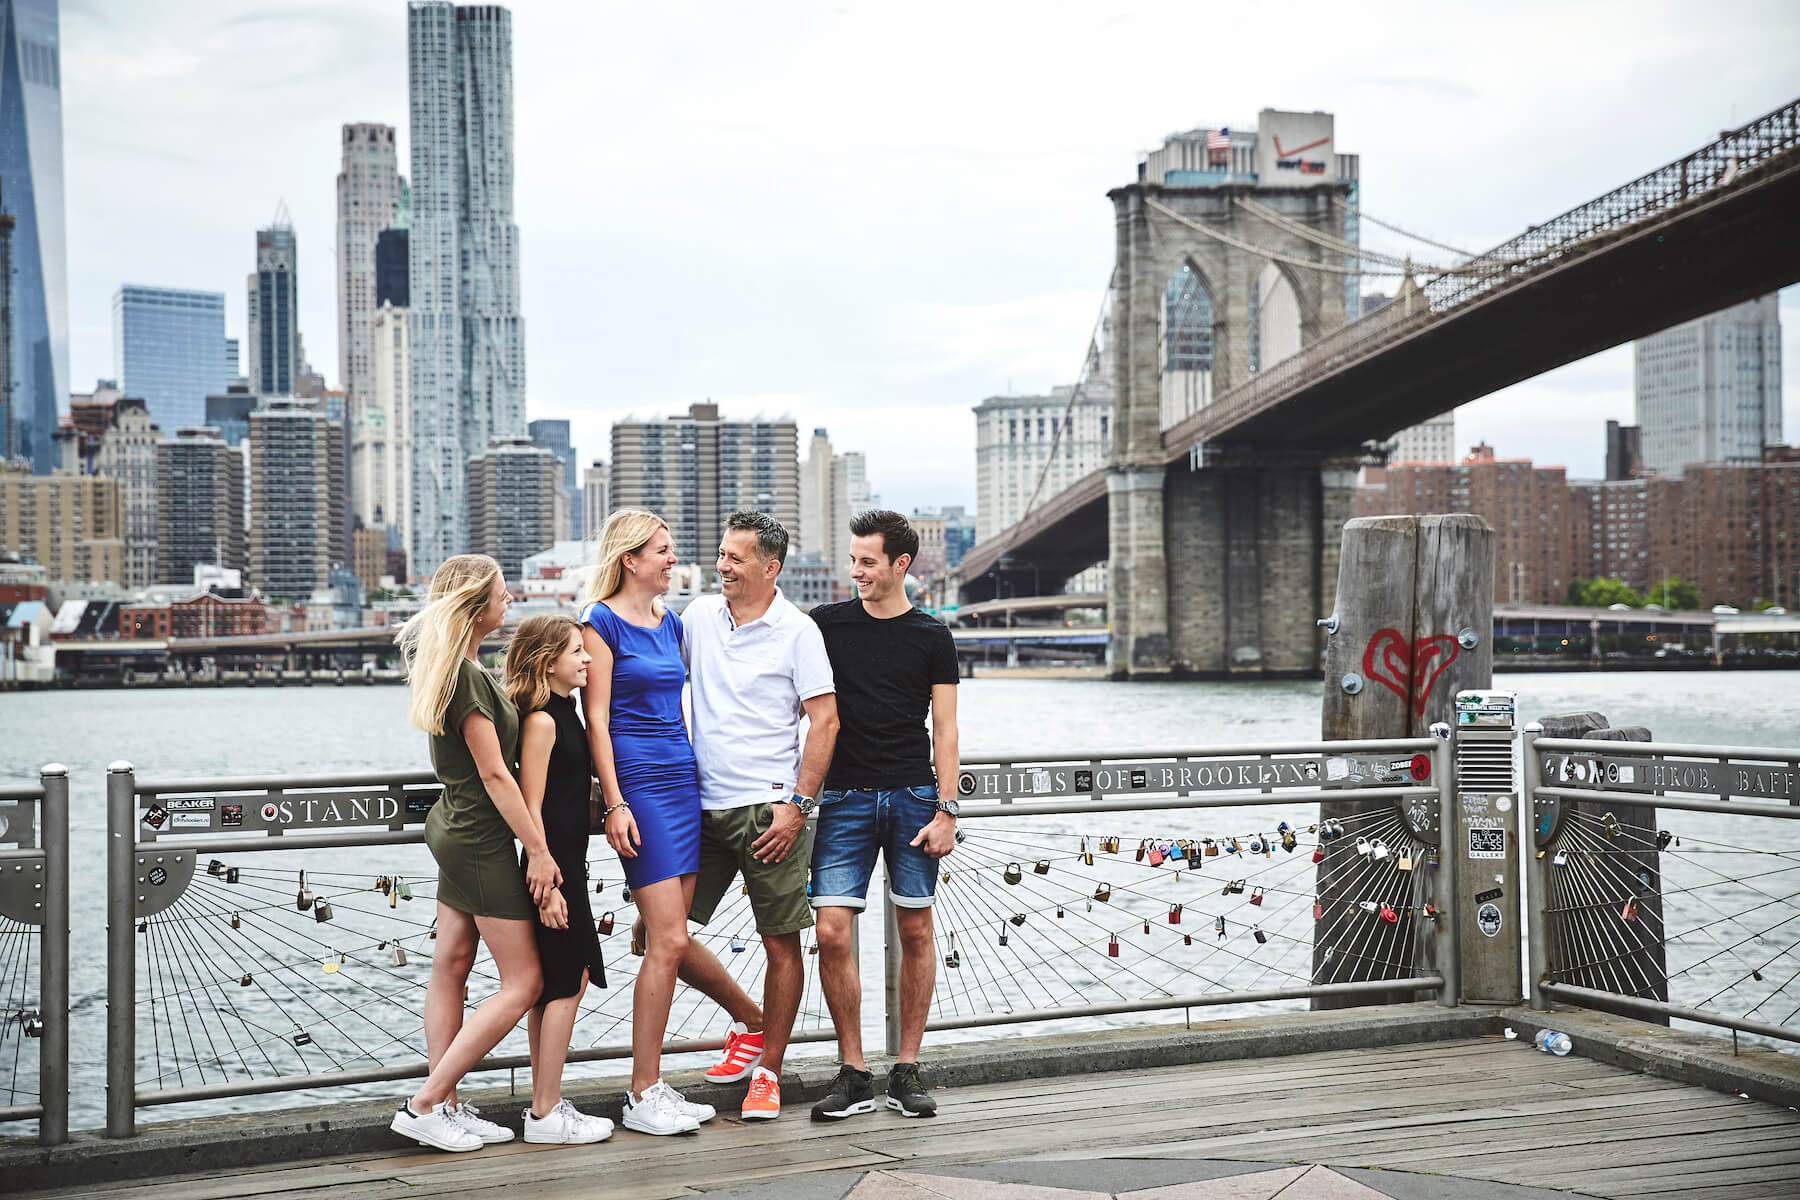 Family laughing together at pier with the Brooklyn Bridge in the background in Brooklyn, New York City USA